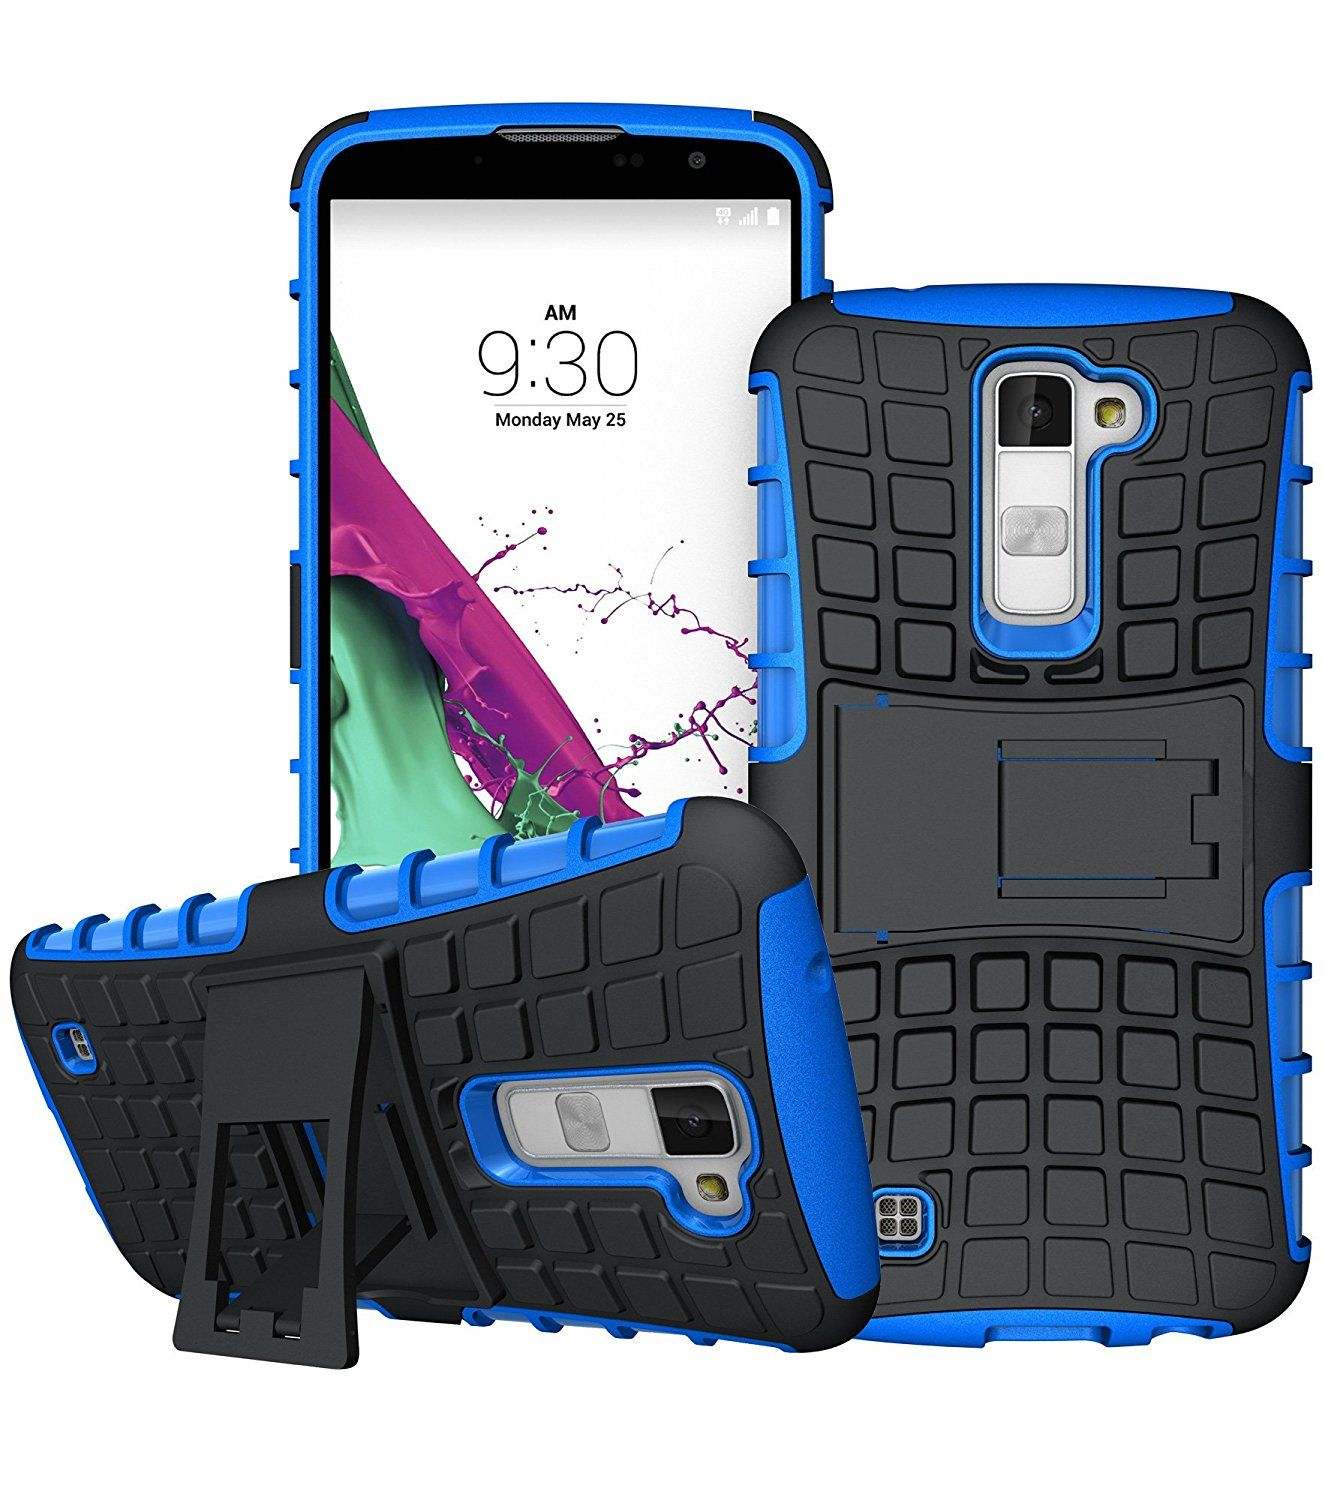 LG K10 Case,LG Premier Case,DIOS CASE(TM) Heavy Duty Tyre Texture Dual Layer Hybrid Hard Plastic Rubber Armored Protection Rugged Impact Resistant Kickstand Cover for LG K10 / LG Premier LTE (Blue) -- This is an Amazon Affiliate link. Click on the image for additional details.